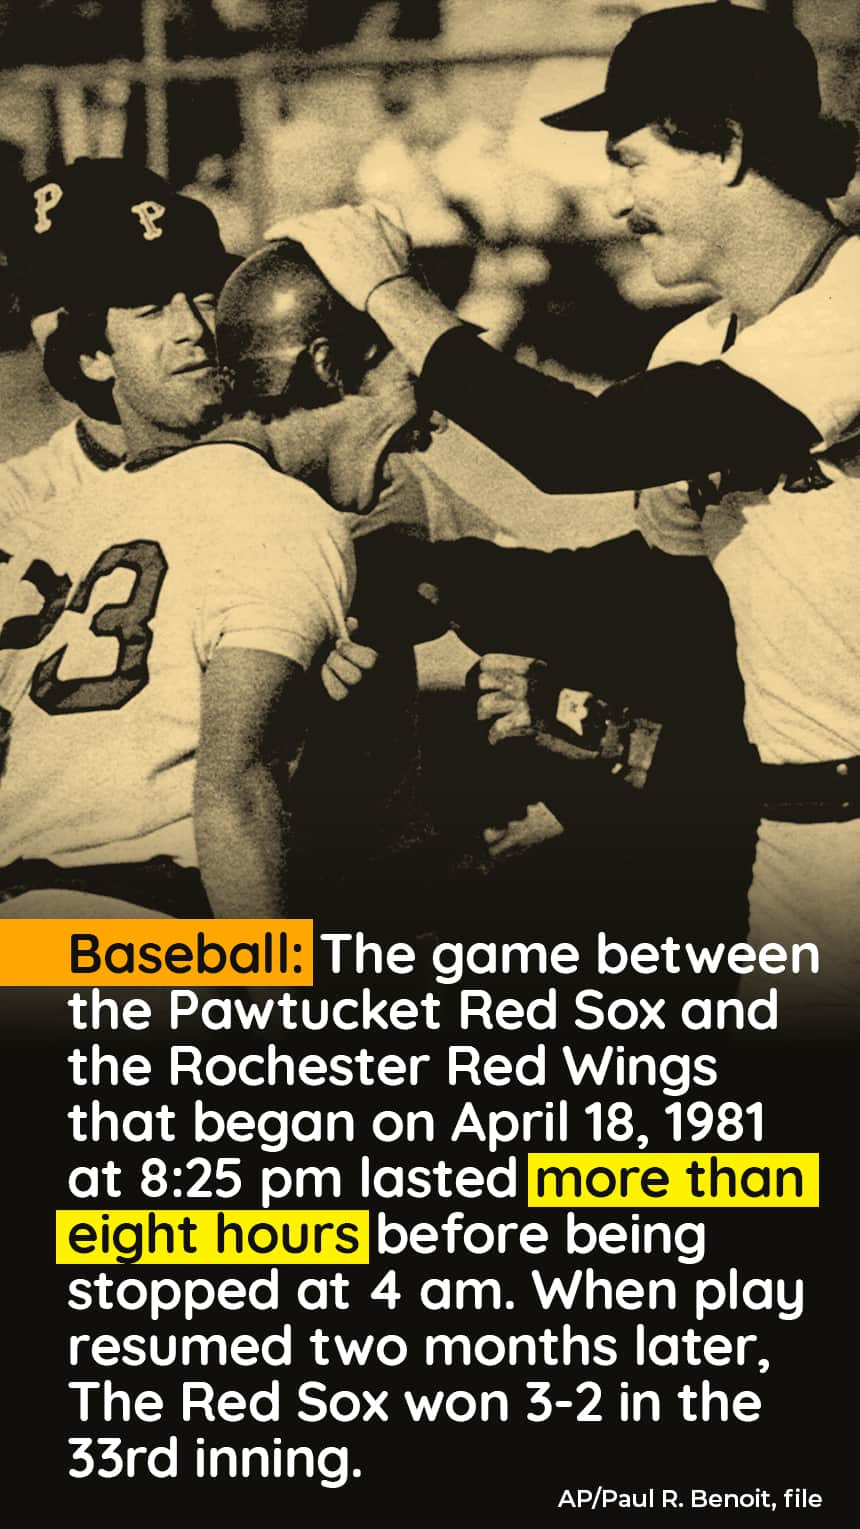 Baseball: The game between the Pawtucket Red Sox and the Rochester Red Wings that began on April 18, 1981 at 8:25pm lasted more than eight hours before being stopped at 4 am. When play resumed two months later, The Red Sox won in the 33rd inning 3-2.